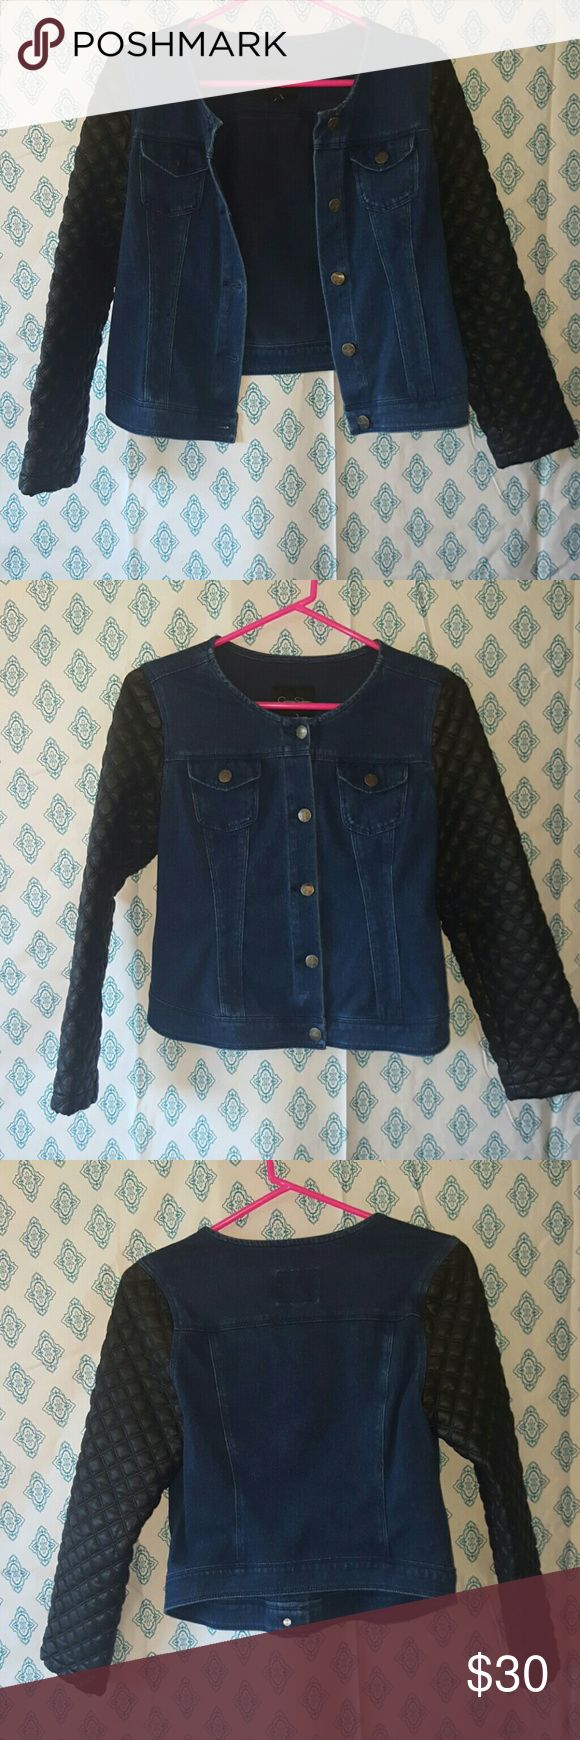 Jessica simpson jacket Faux leather and denim moto jacket Jessica Simpson Jackets & Coats